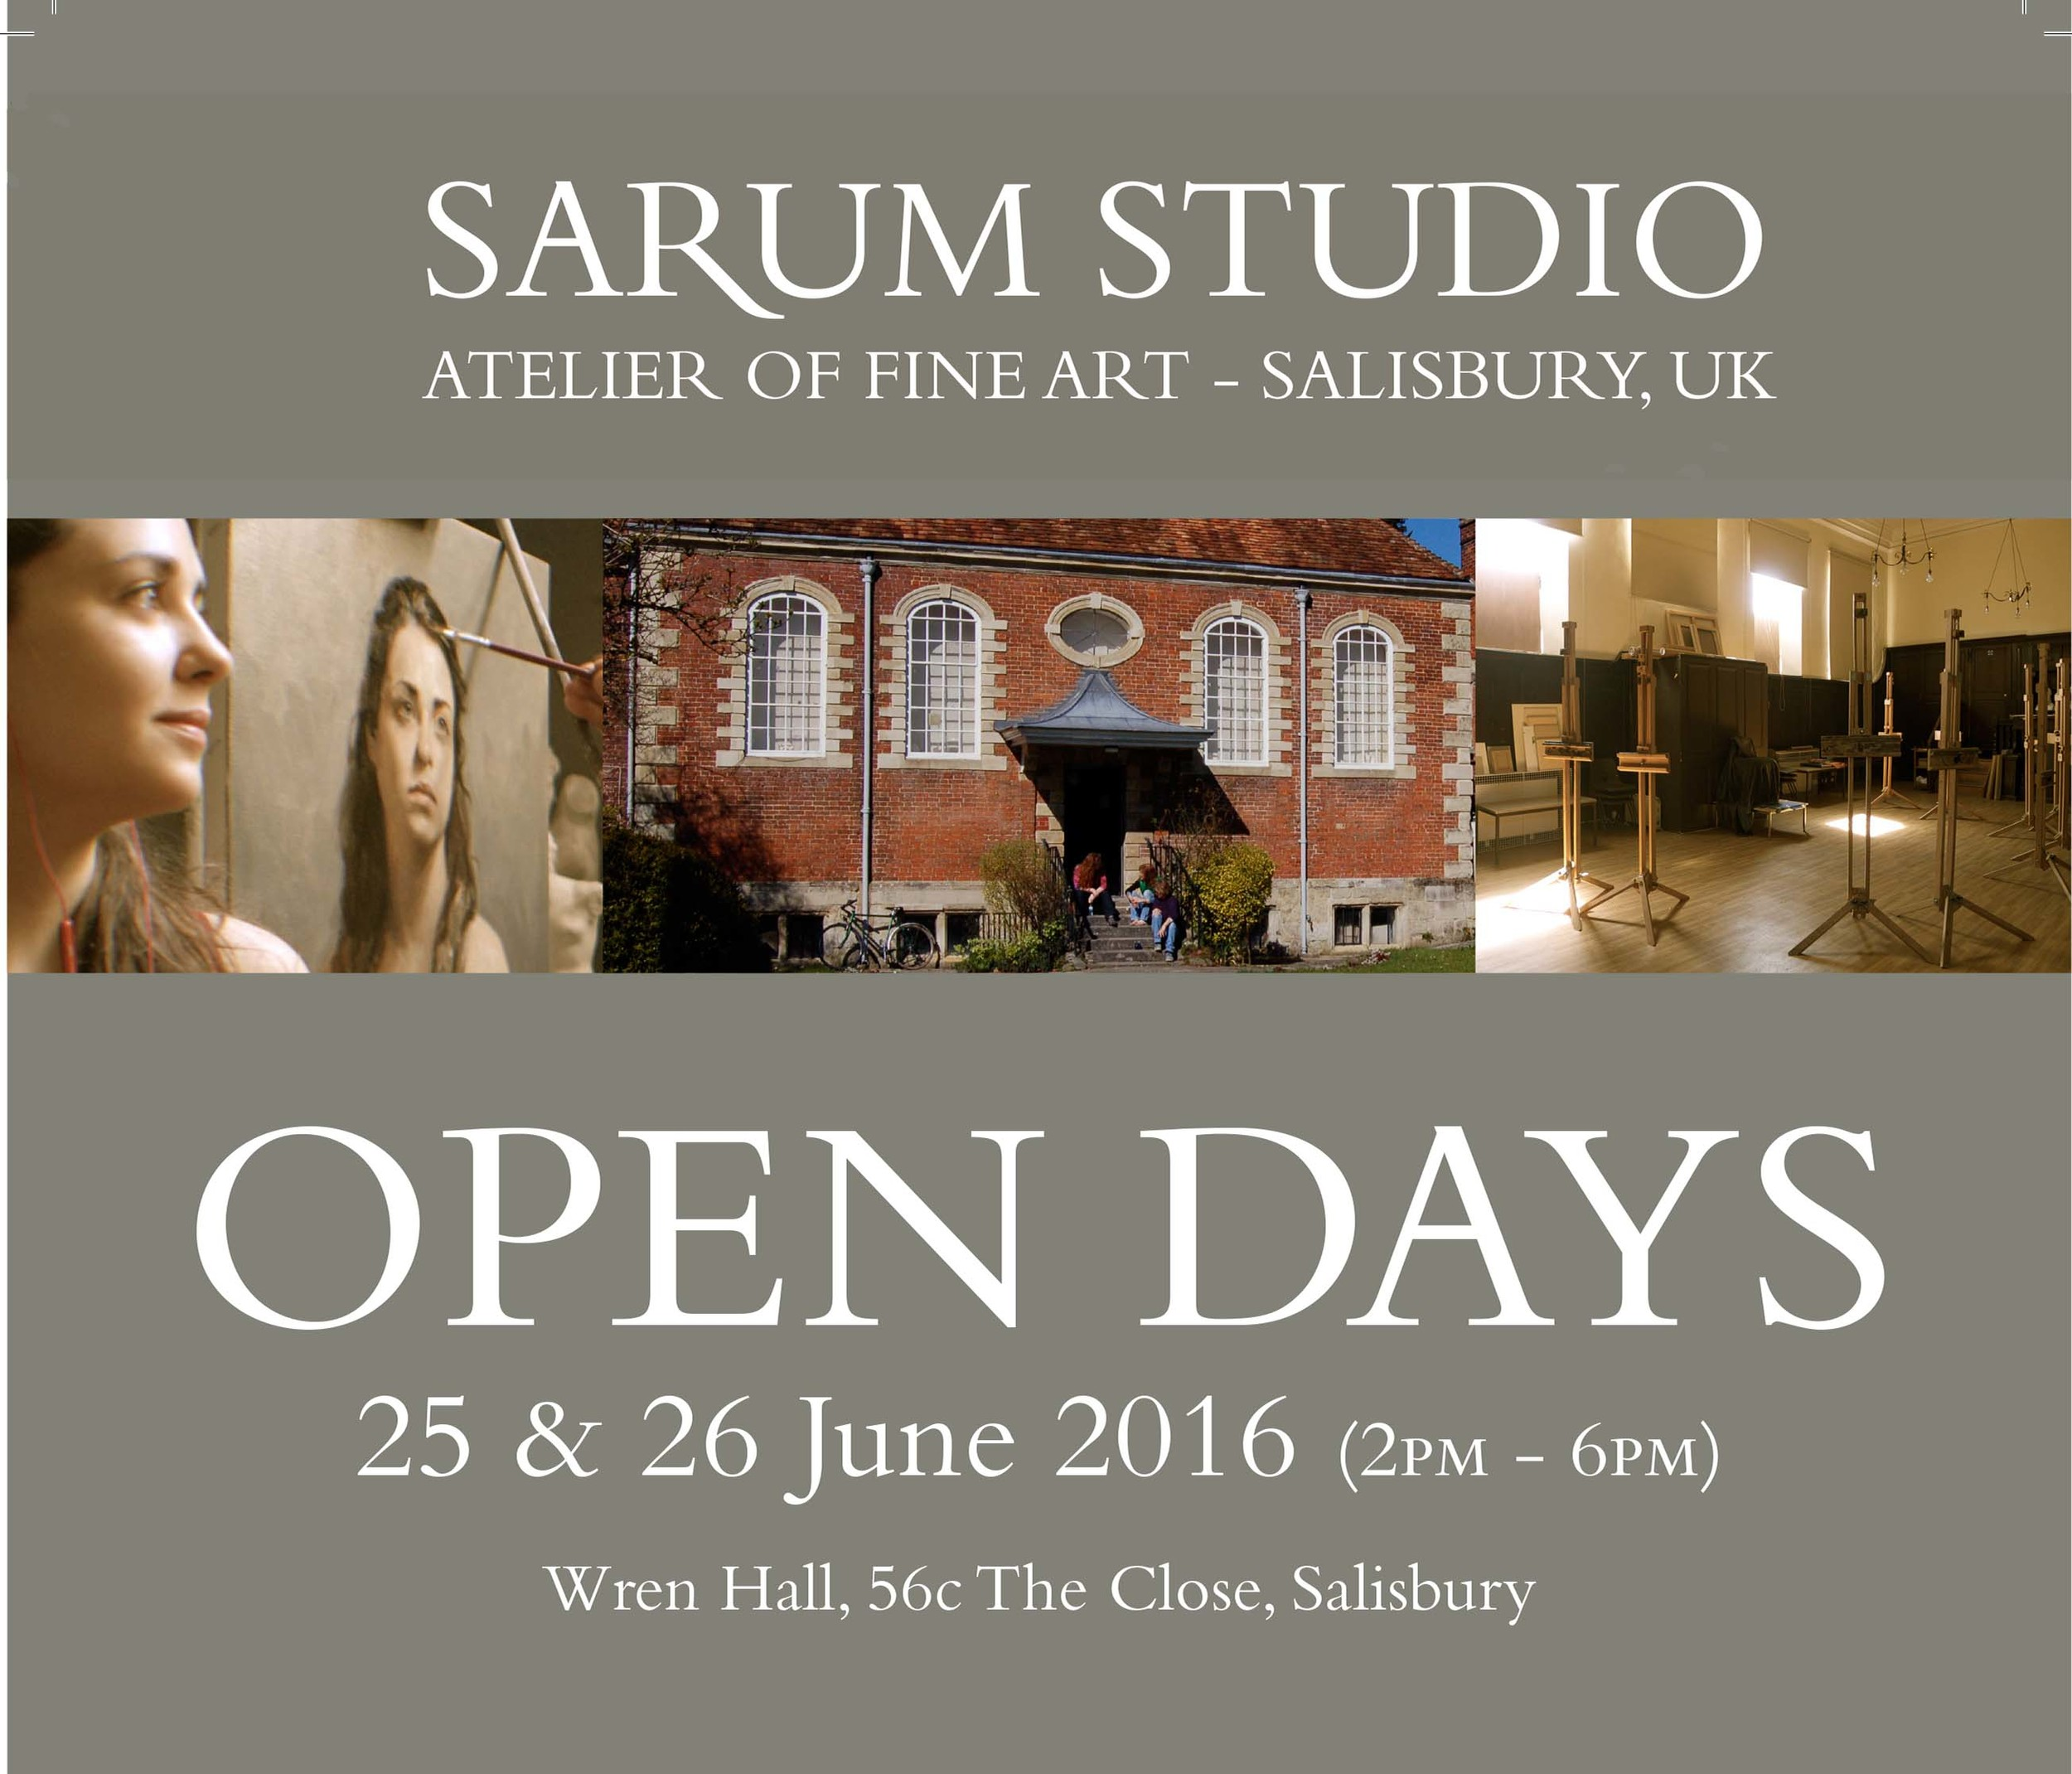 I have spent the last 8 Months studying and assisting at the Sarum Studio in Salisbury. I have had a wonderful time working alongside some exceptionally talented people. The studio is having an open day this weekend. There will be a portraiture demonstration, lecture and exhibition of student work....See you there!